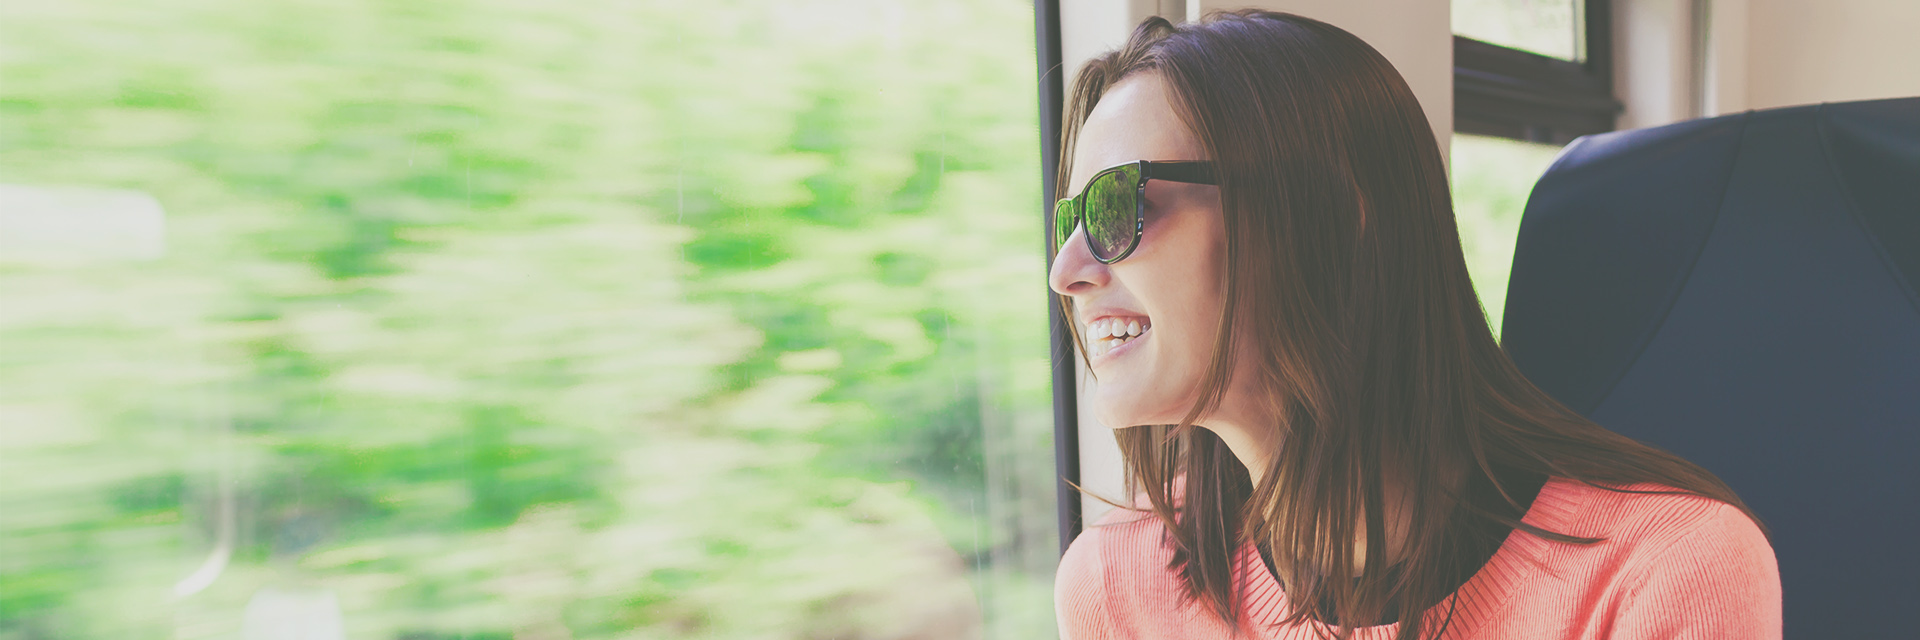 Young woman looking out the window during a train ride